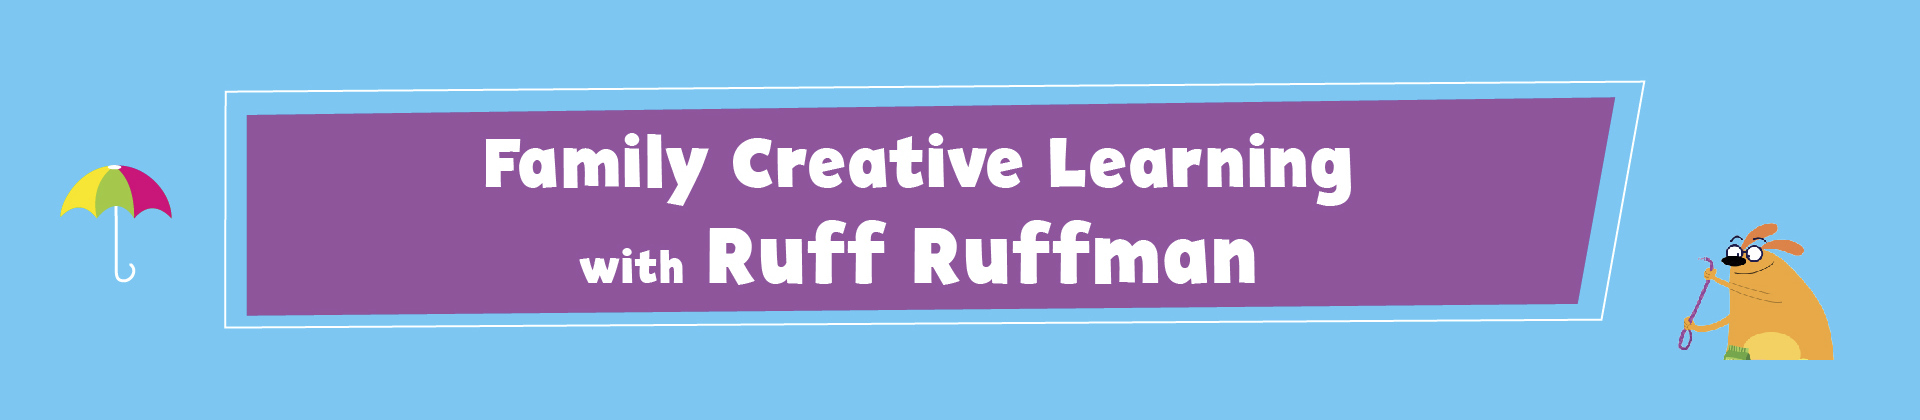 family creative learning ruff ruffman